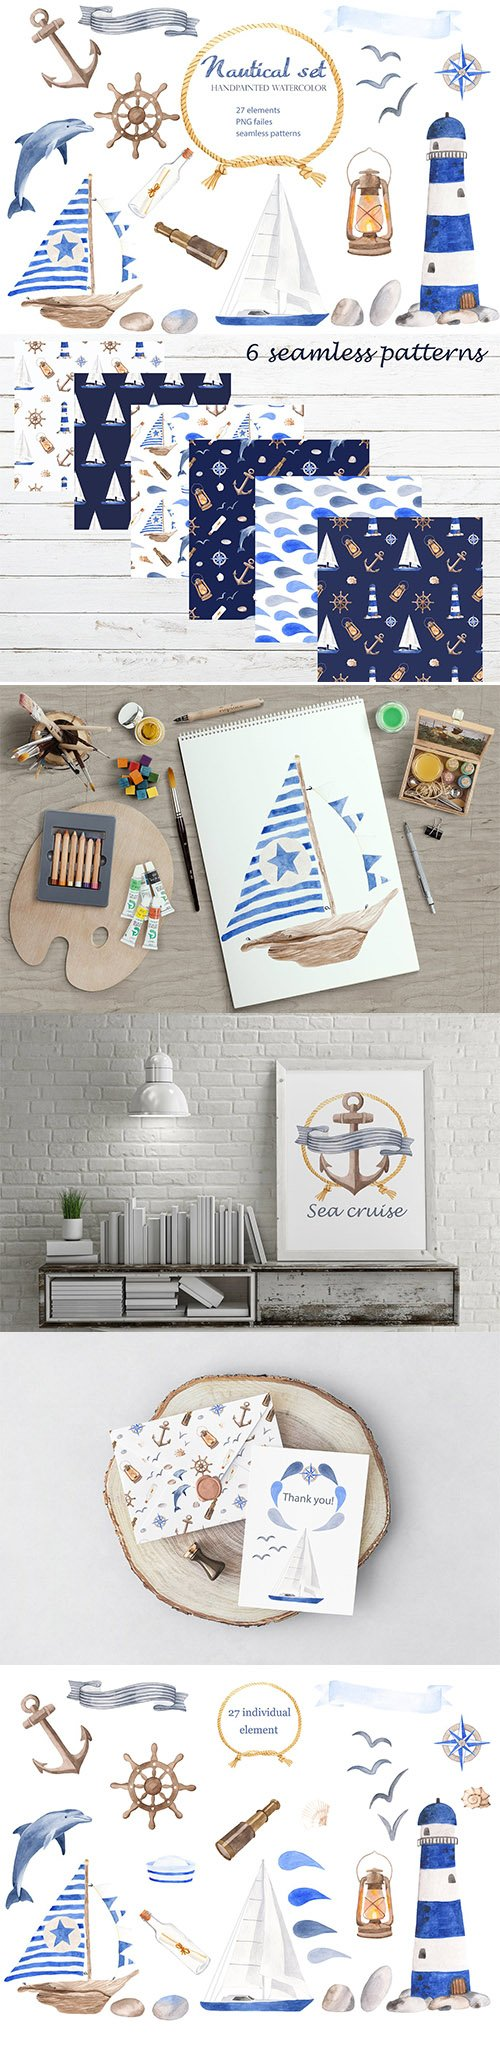 Watercolor Nautical. Clipart and Seamless Patterns